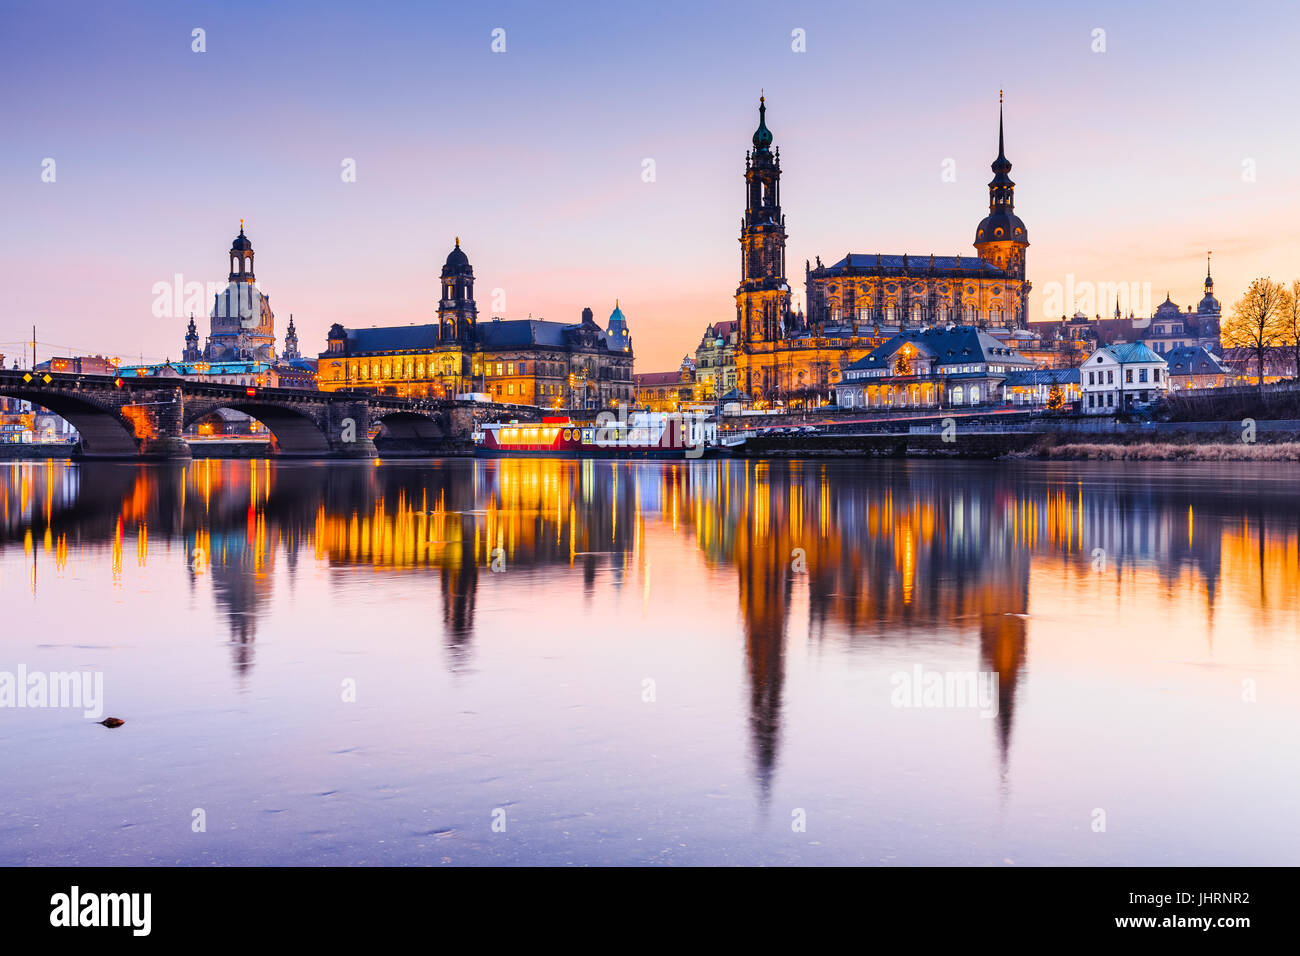 Dresden, Germany. Cathedral of the Holy Trinity or Hofkirche, Bruehl's Terrace. Twilight sunset on Elbe river - Stock Image